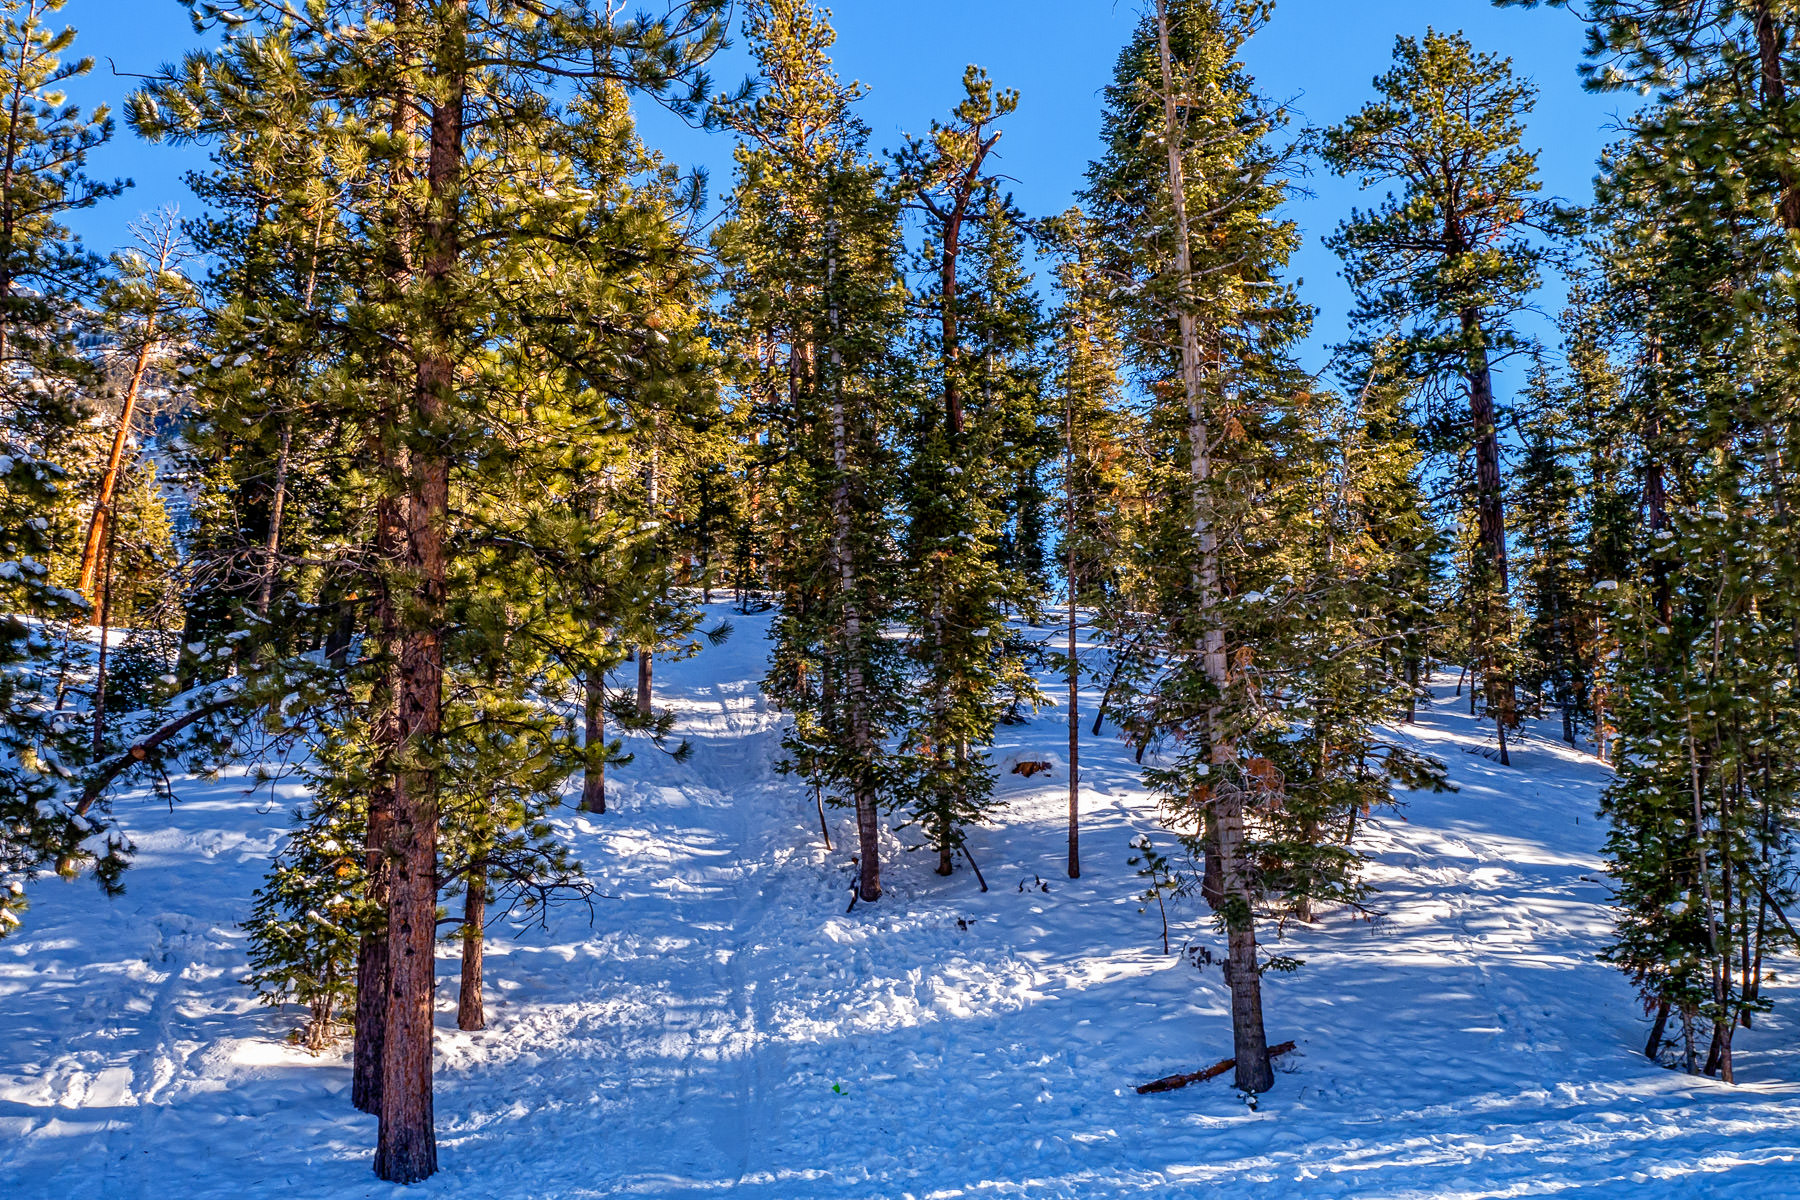 Evergreen trees in the snow at Mount Charleston, Nevada.